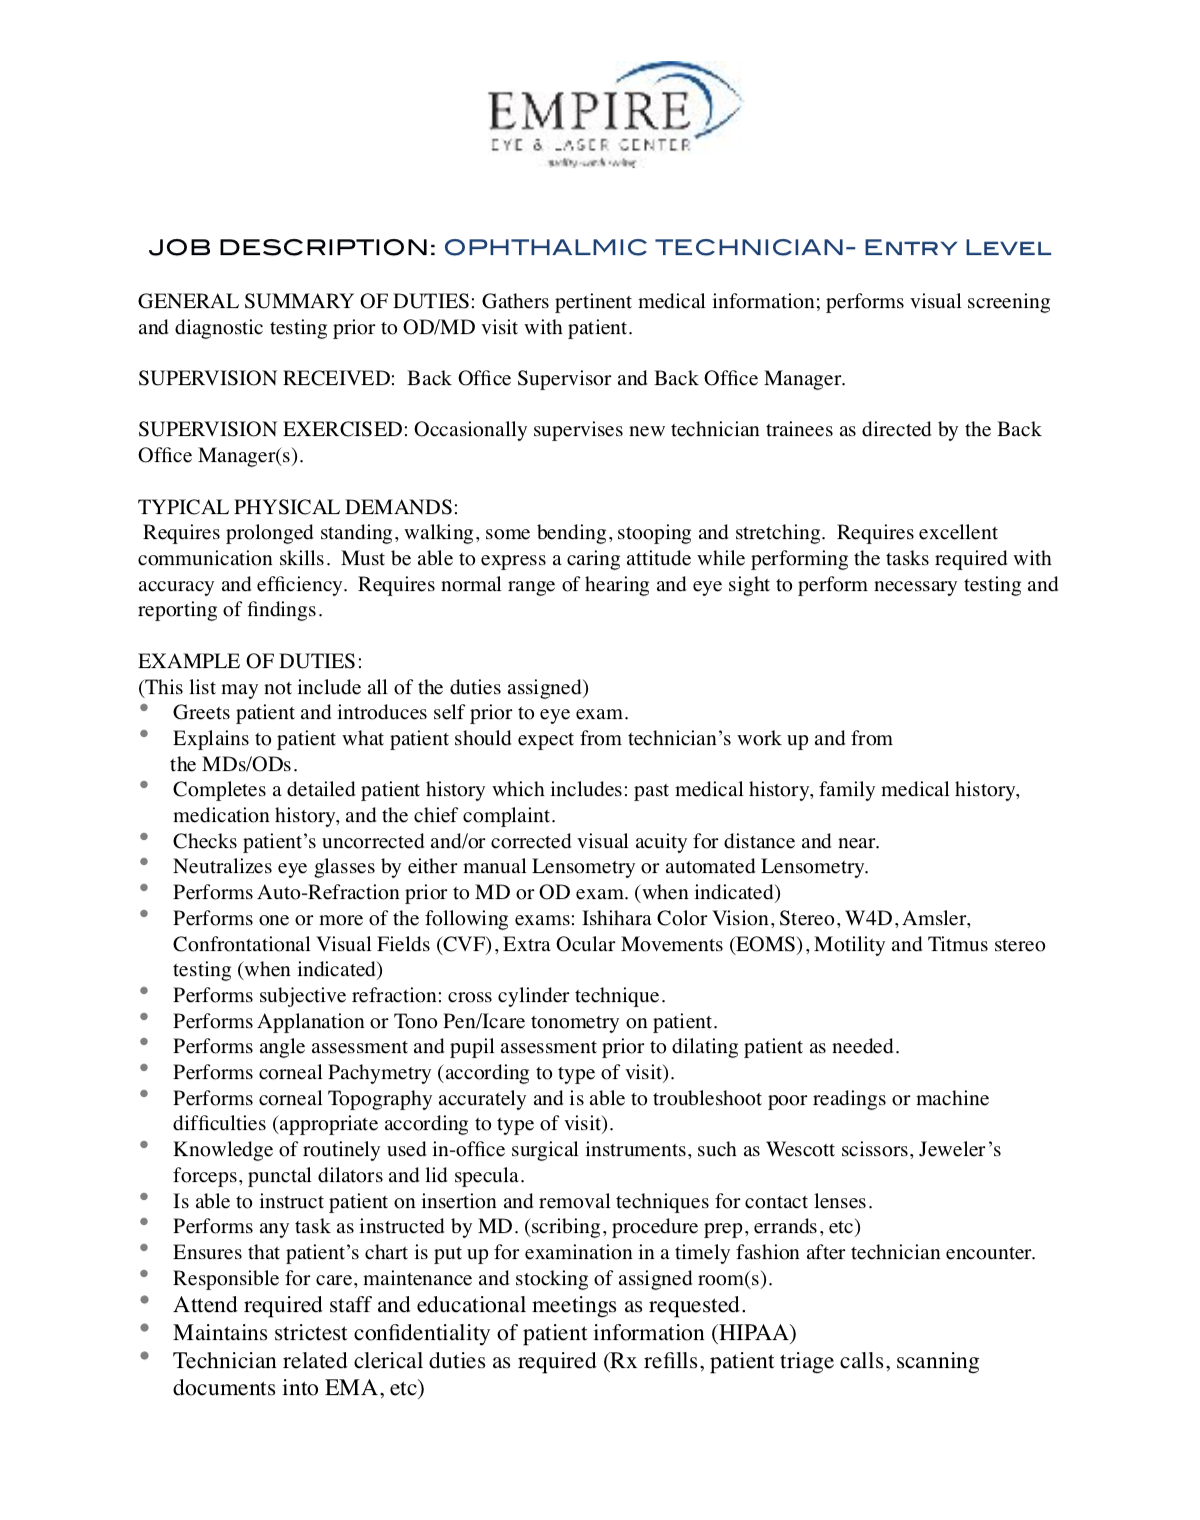 Ophthalmic Technician Entry Level